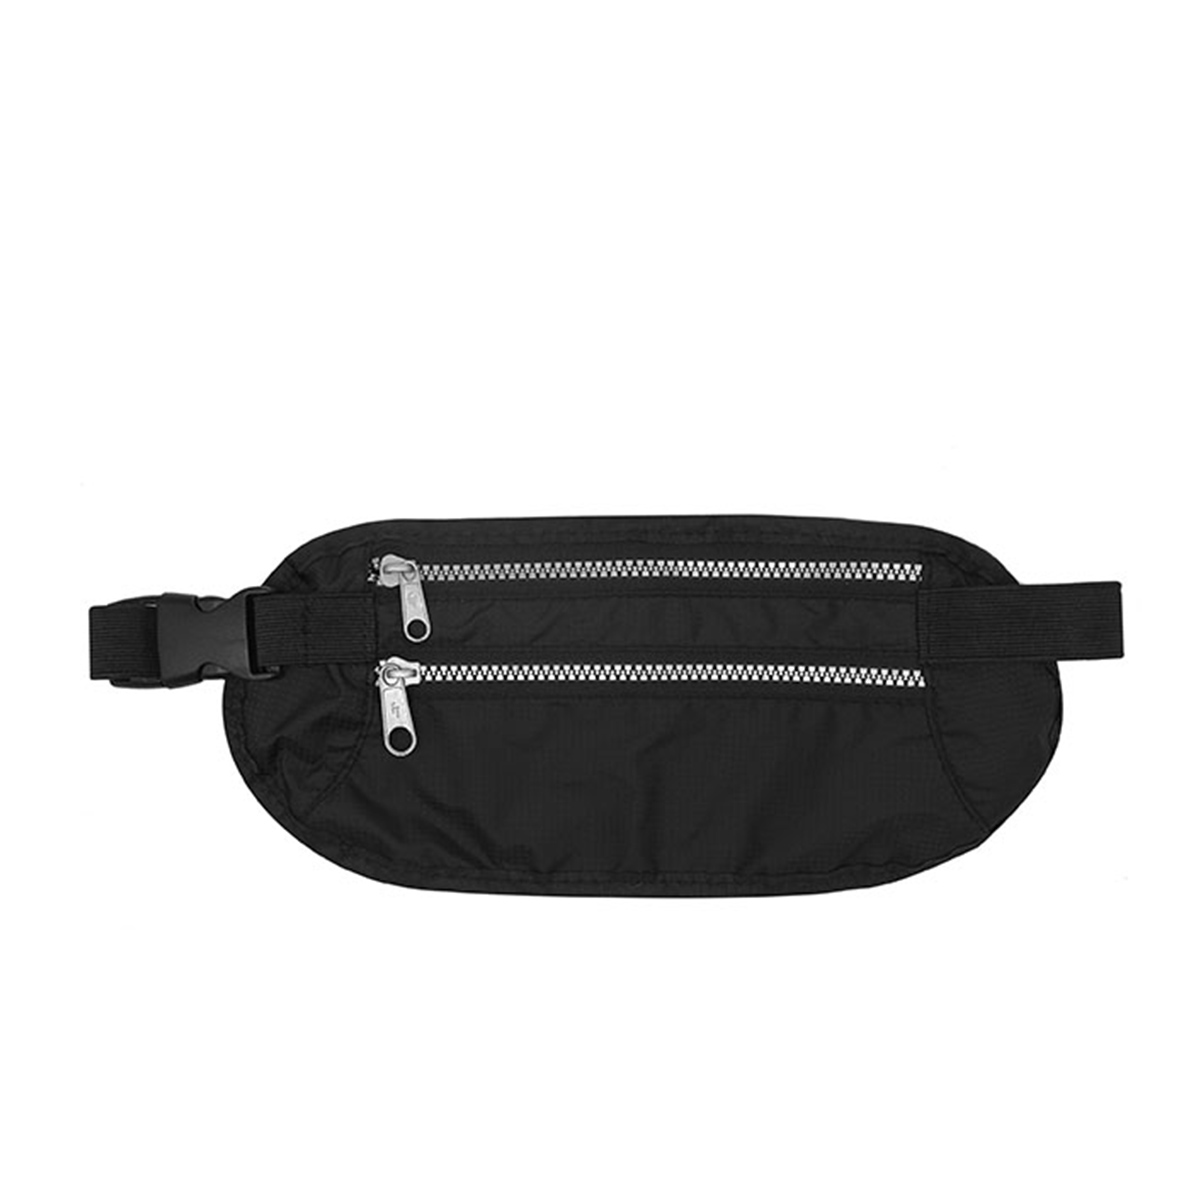 WAIST BAG - Fast Travel